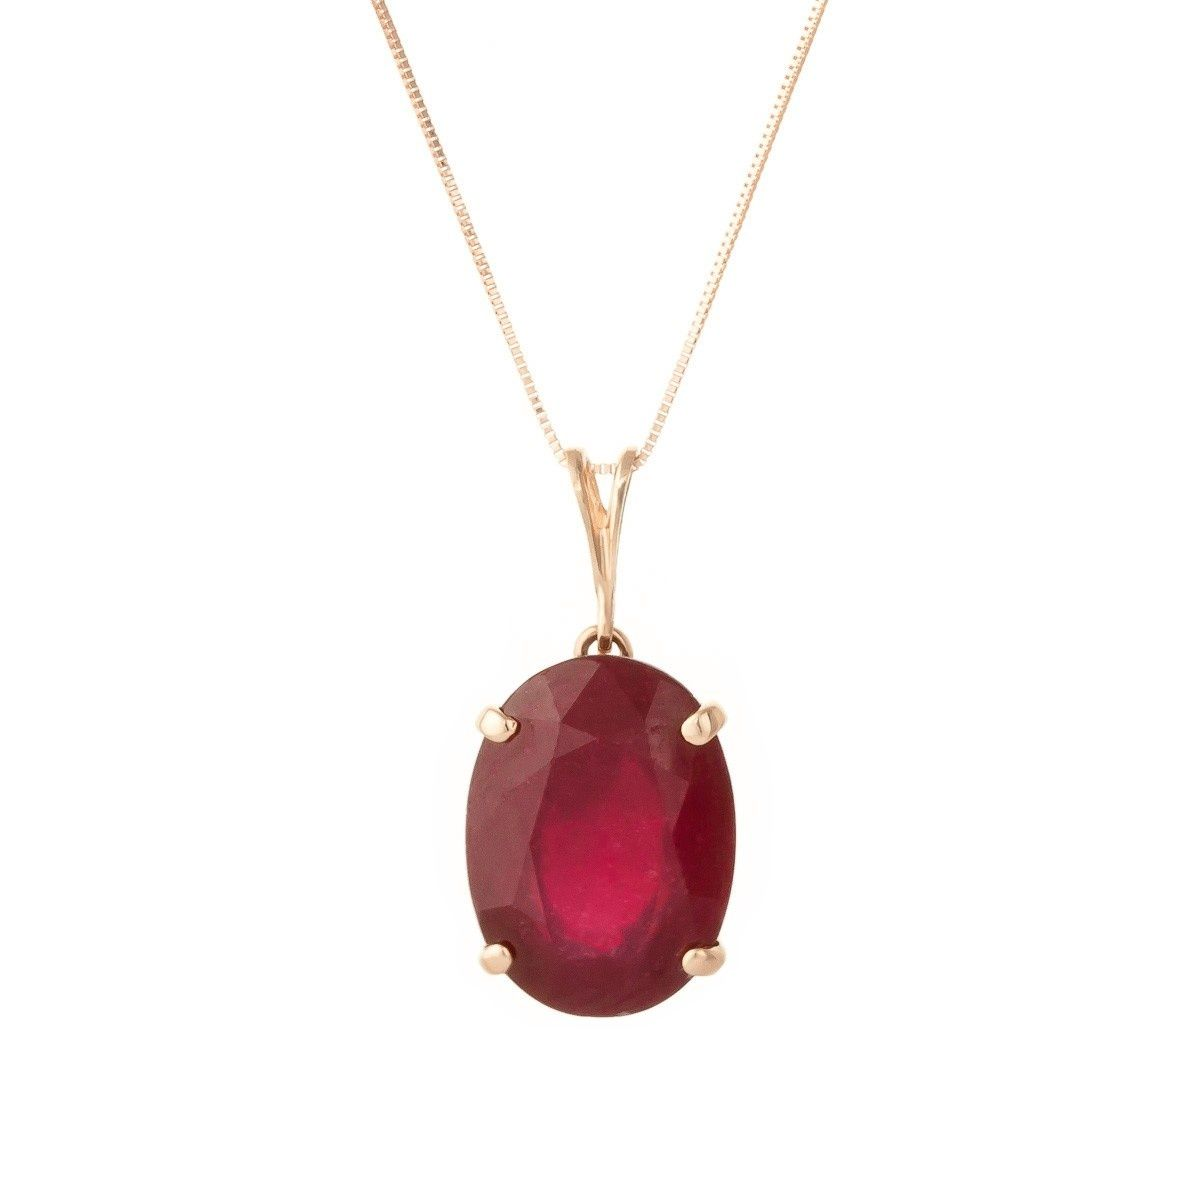 Genuine Ruby Jewelry Gifts for Her Natural Ruby Diamond Pendant Sterling Silver Pendant Pave Diamond Pendant Gemstone Pendant